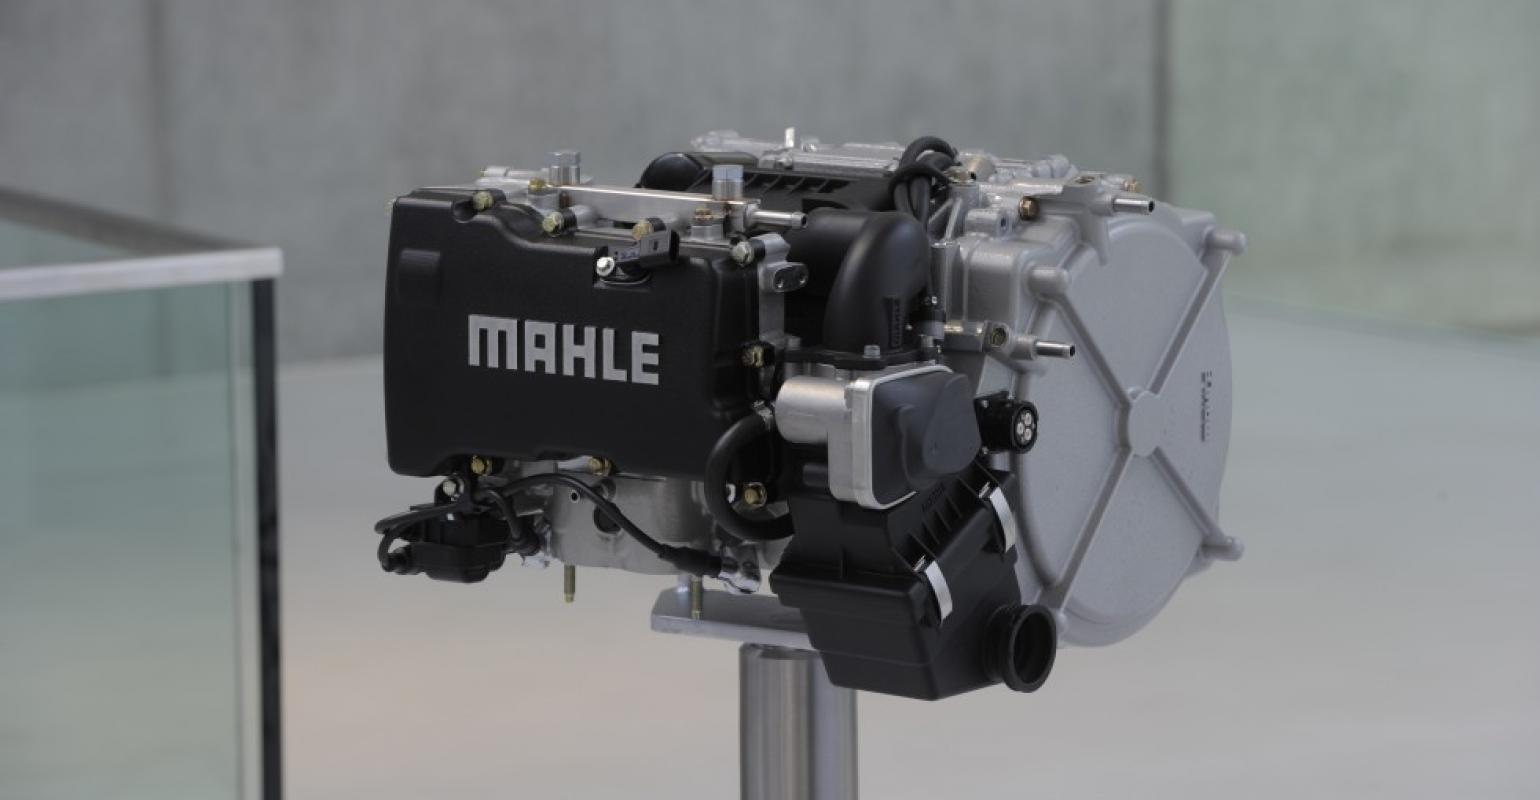 Mahle Range Extender Engine Takes Cues From Gps